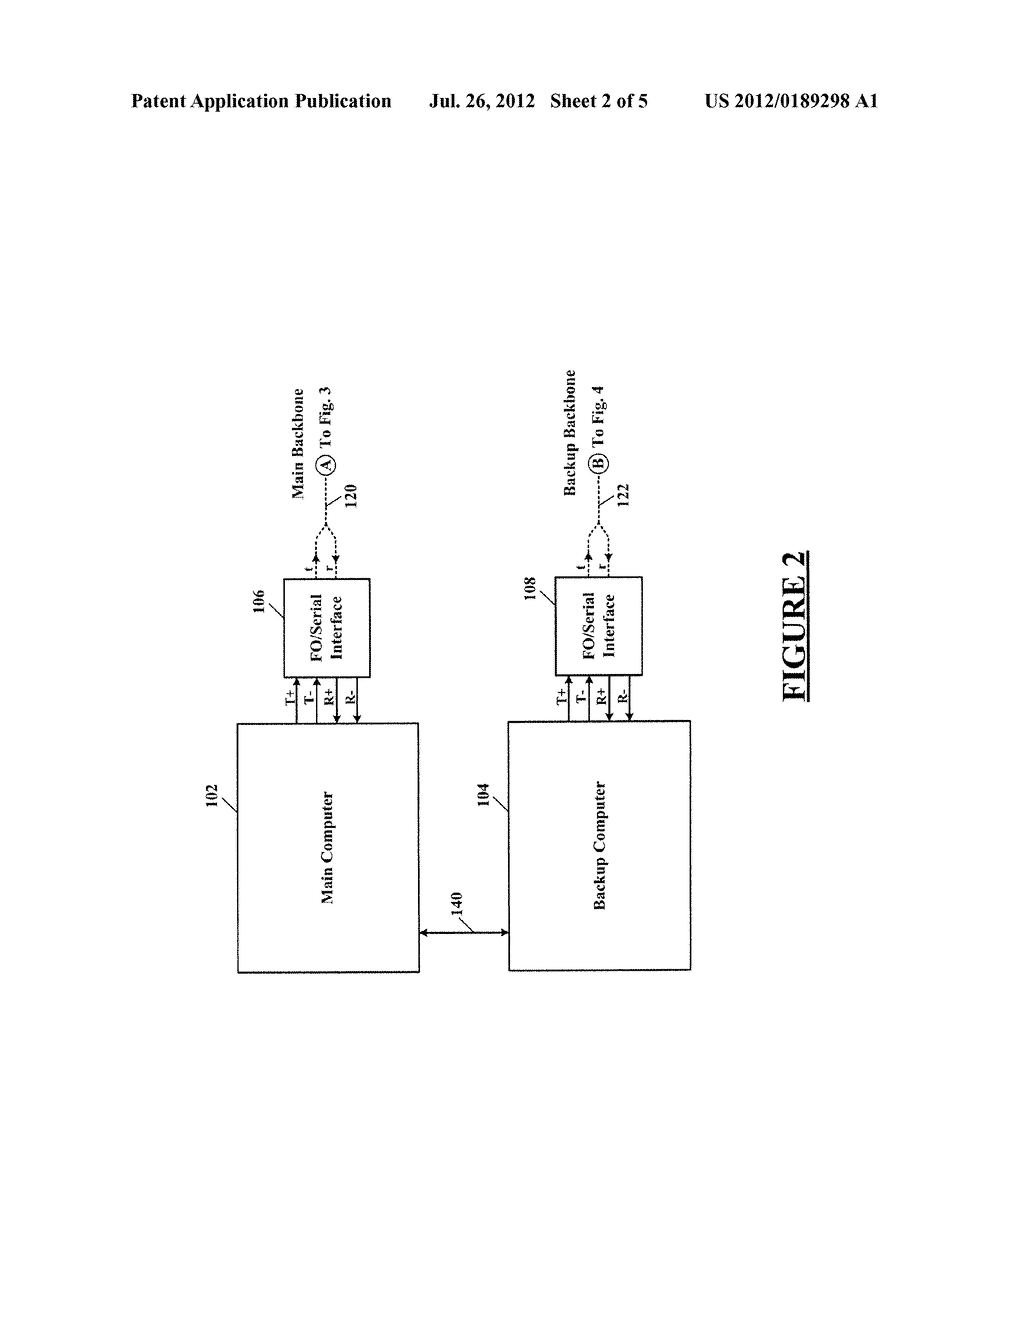 Airfield Lighting Control And Monitoring System Utilizing Fiber Optics Diagram Showing How Light Can Optic Double Loop Self Healing Communications Schematic Image 03